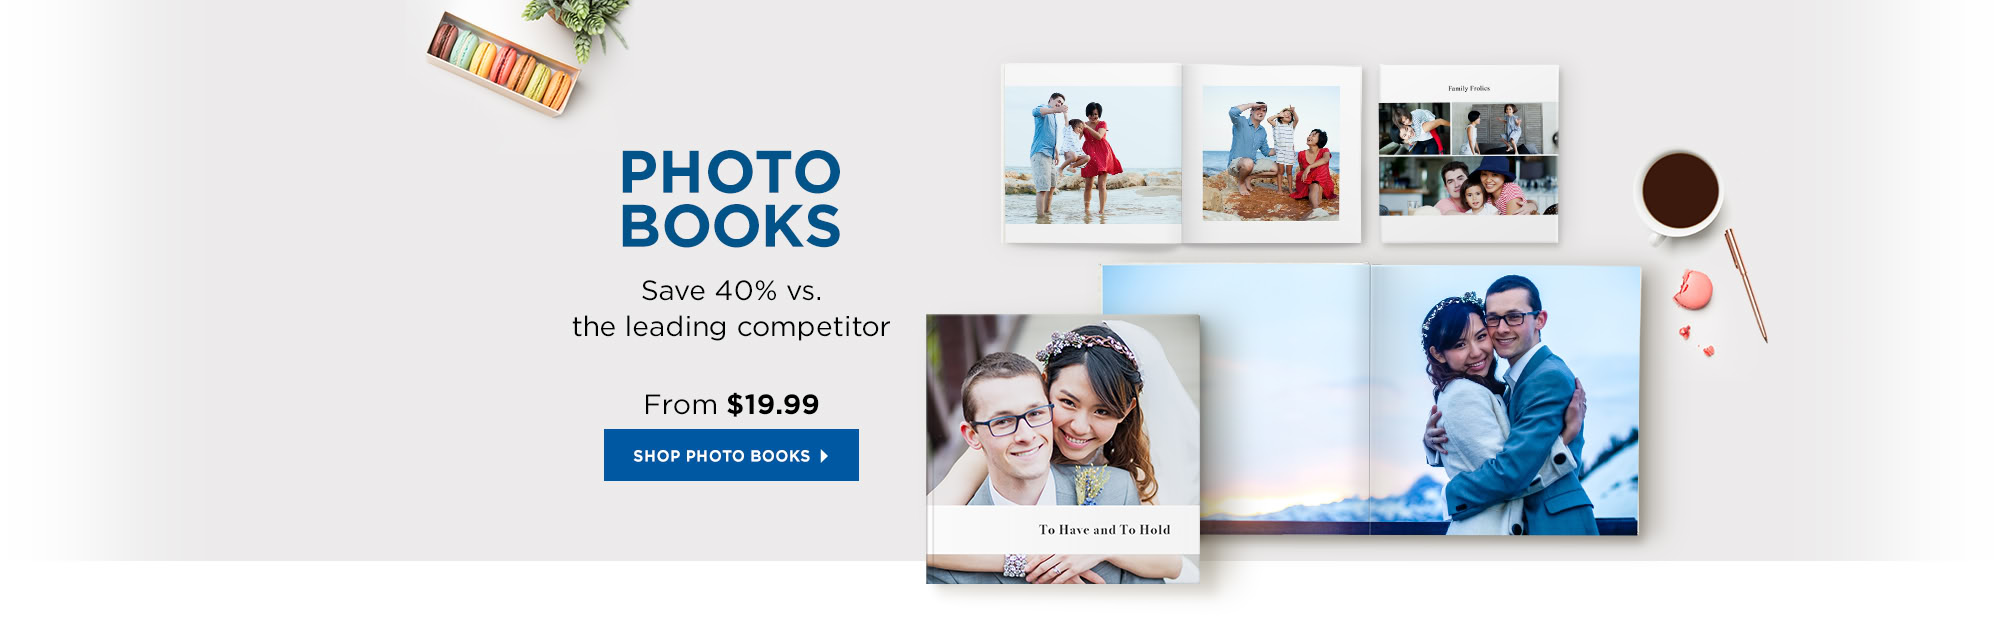 Costco Photo Center: Personalized Photo Gifts, Canvas Prints, Photo ...